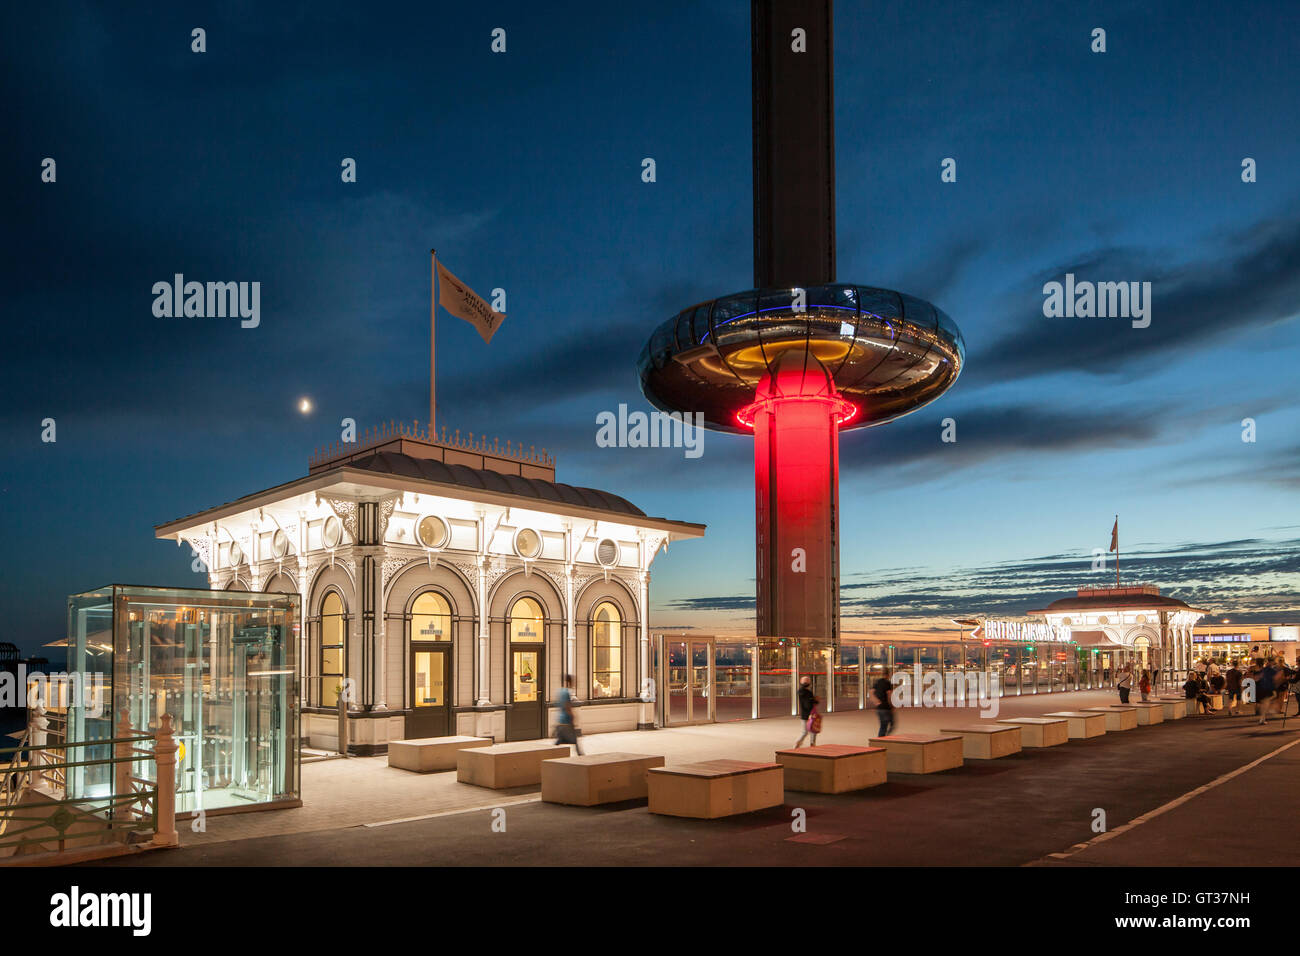 Evening i360 viewing platform in Brighton, East Sussex, England. - Stock Image